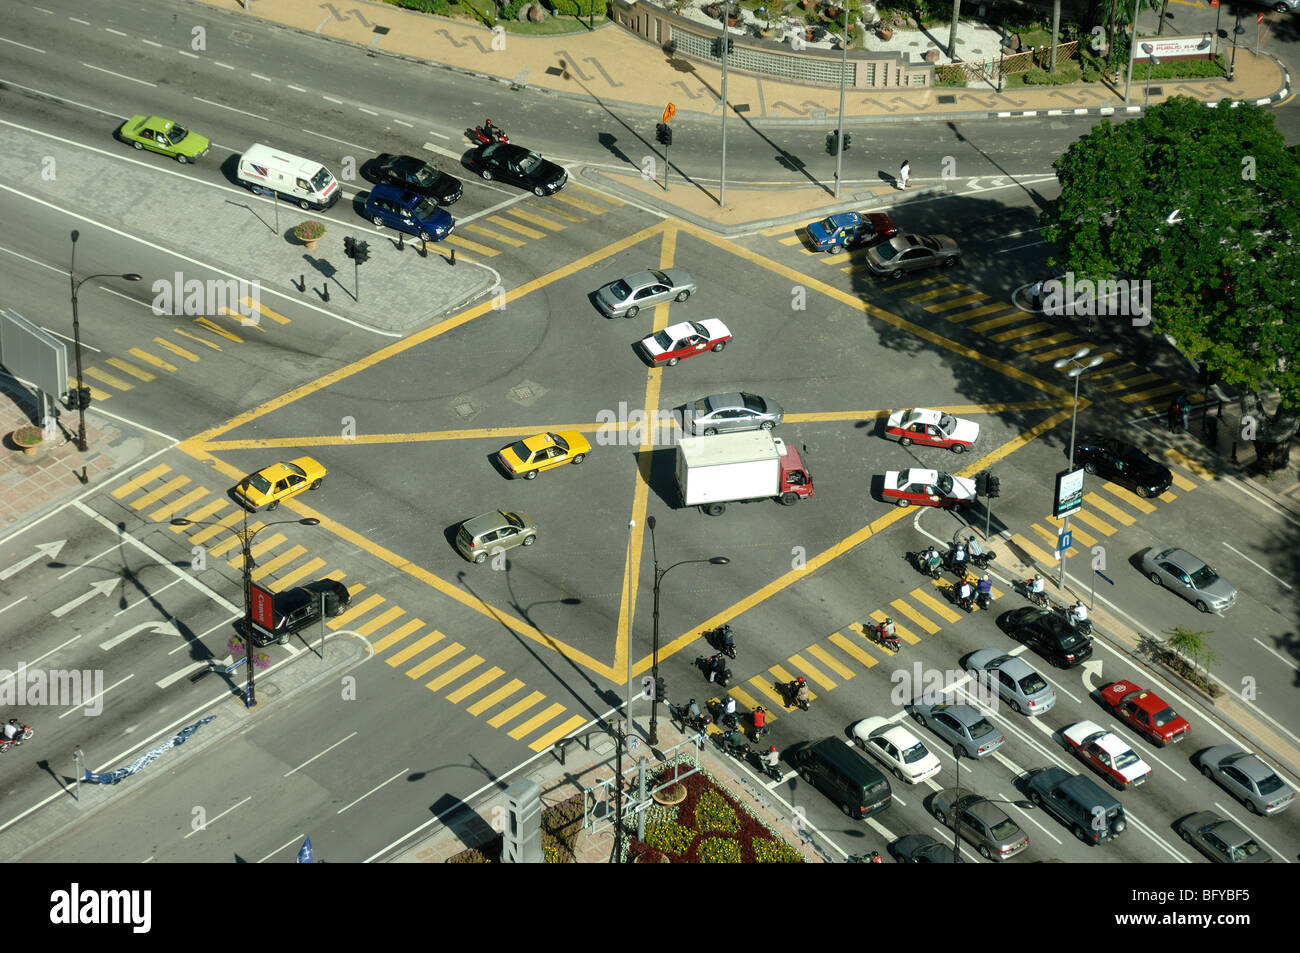 Aerial View of Road Junction, Crossroads or Traffic Intersection, KLCC or Kuala Lumpur City Centre, Kuala Lumpur, - Stock Image